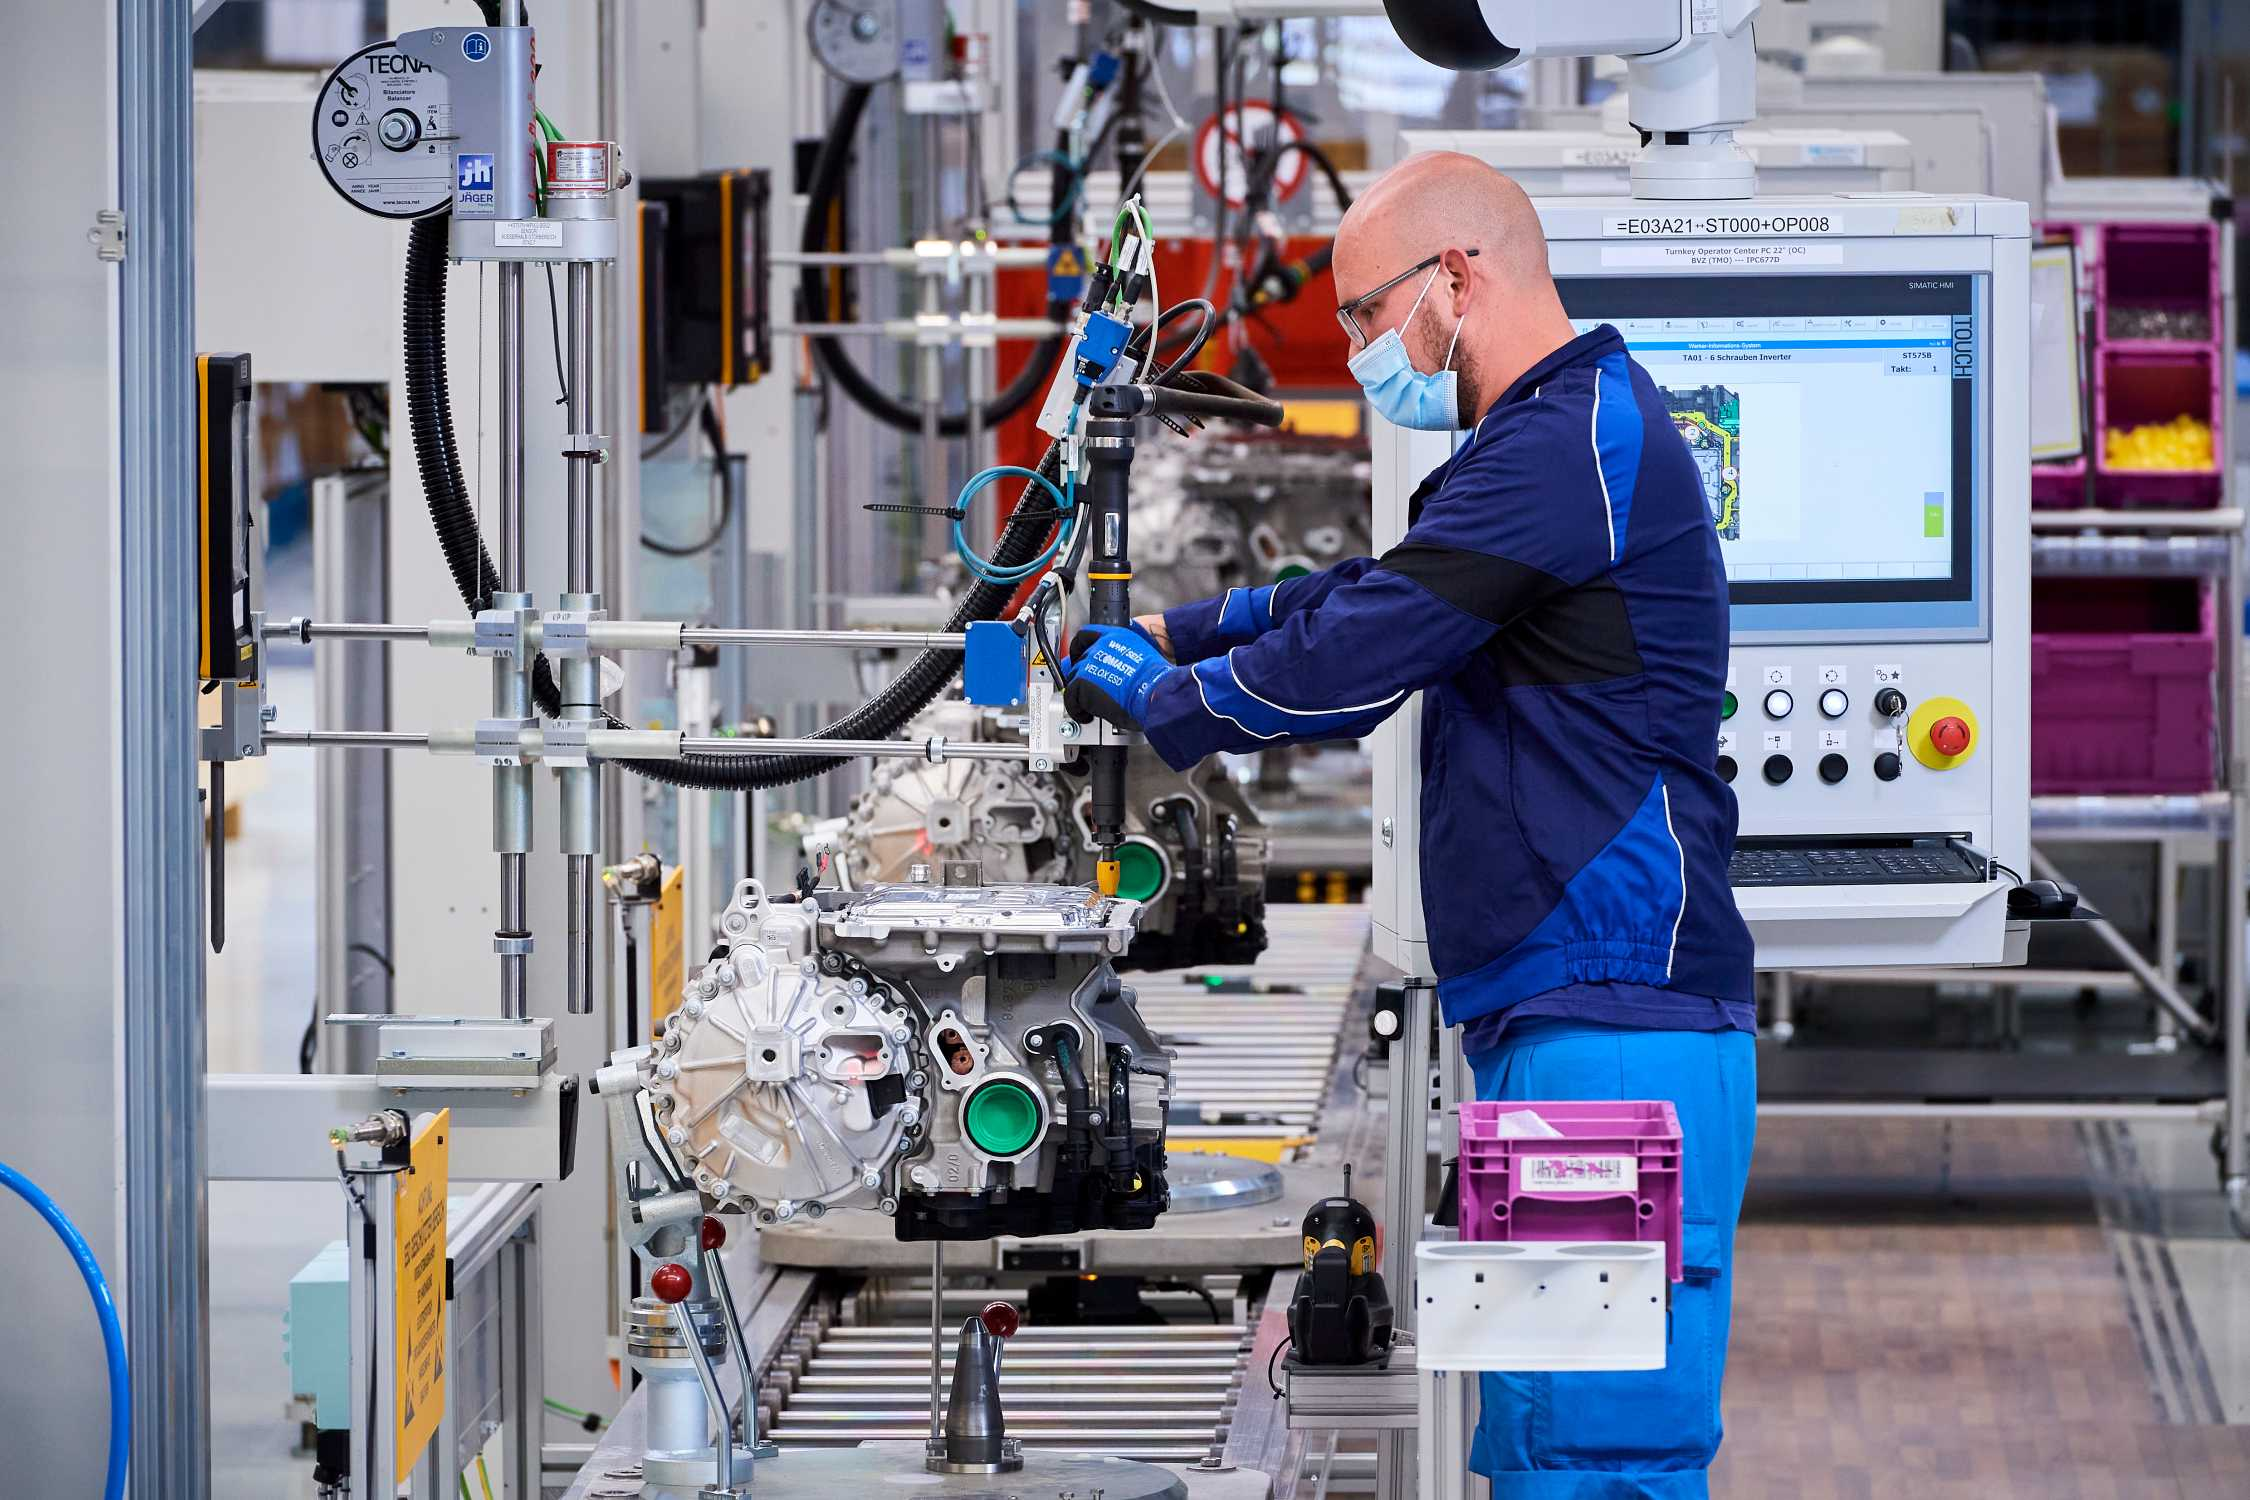 Production of the highly integrated BMW e-drive – final assembly at the Competence Centre for E-Drive Production in Dingolfing (06/2020)